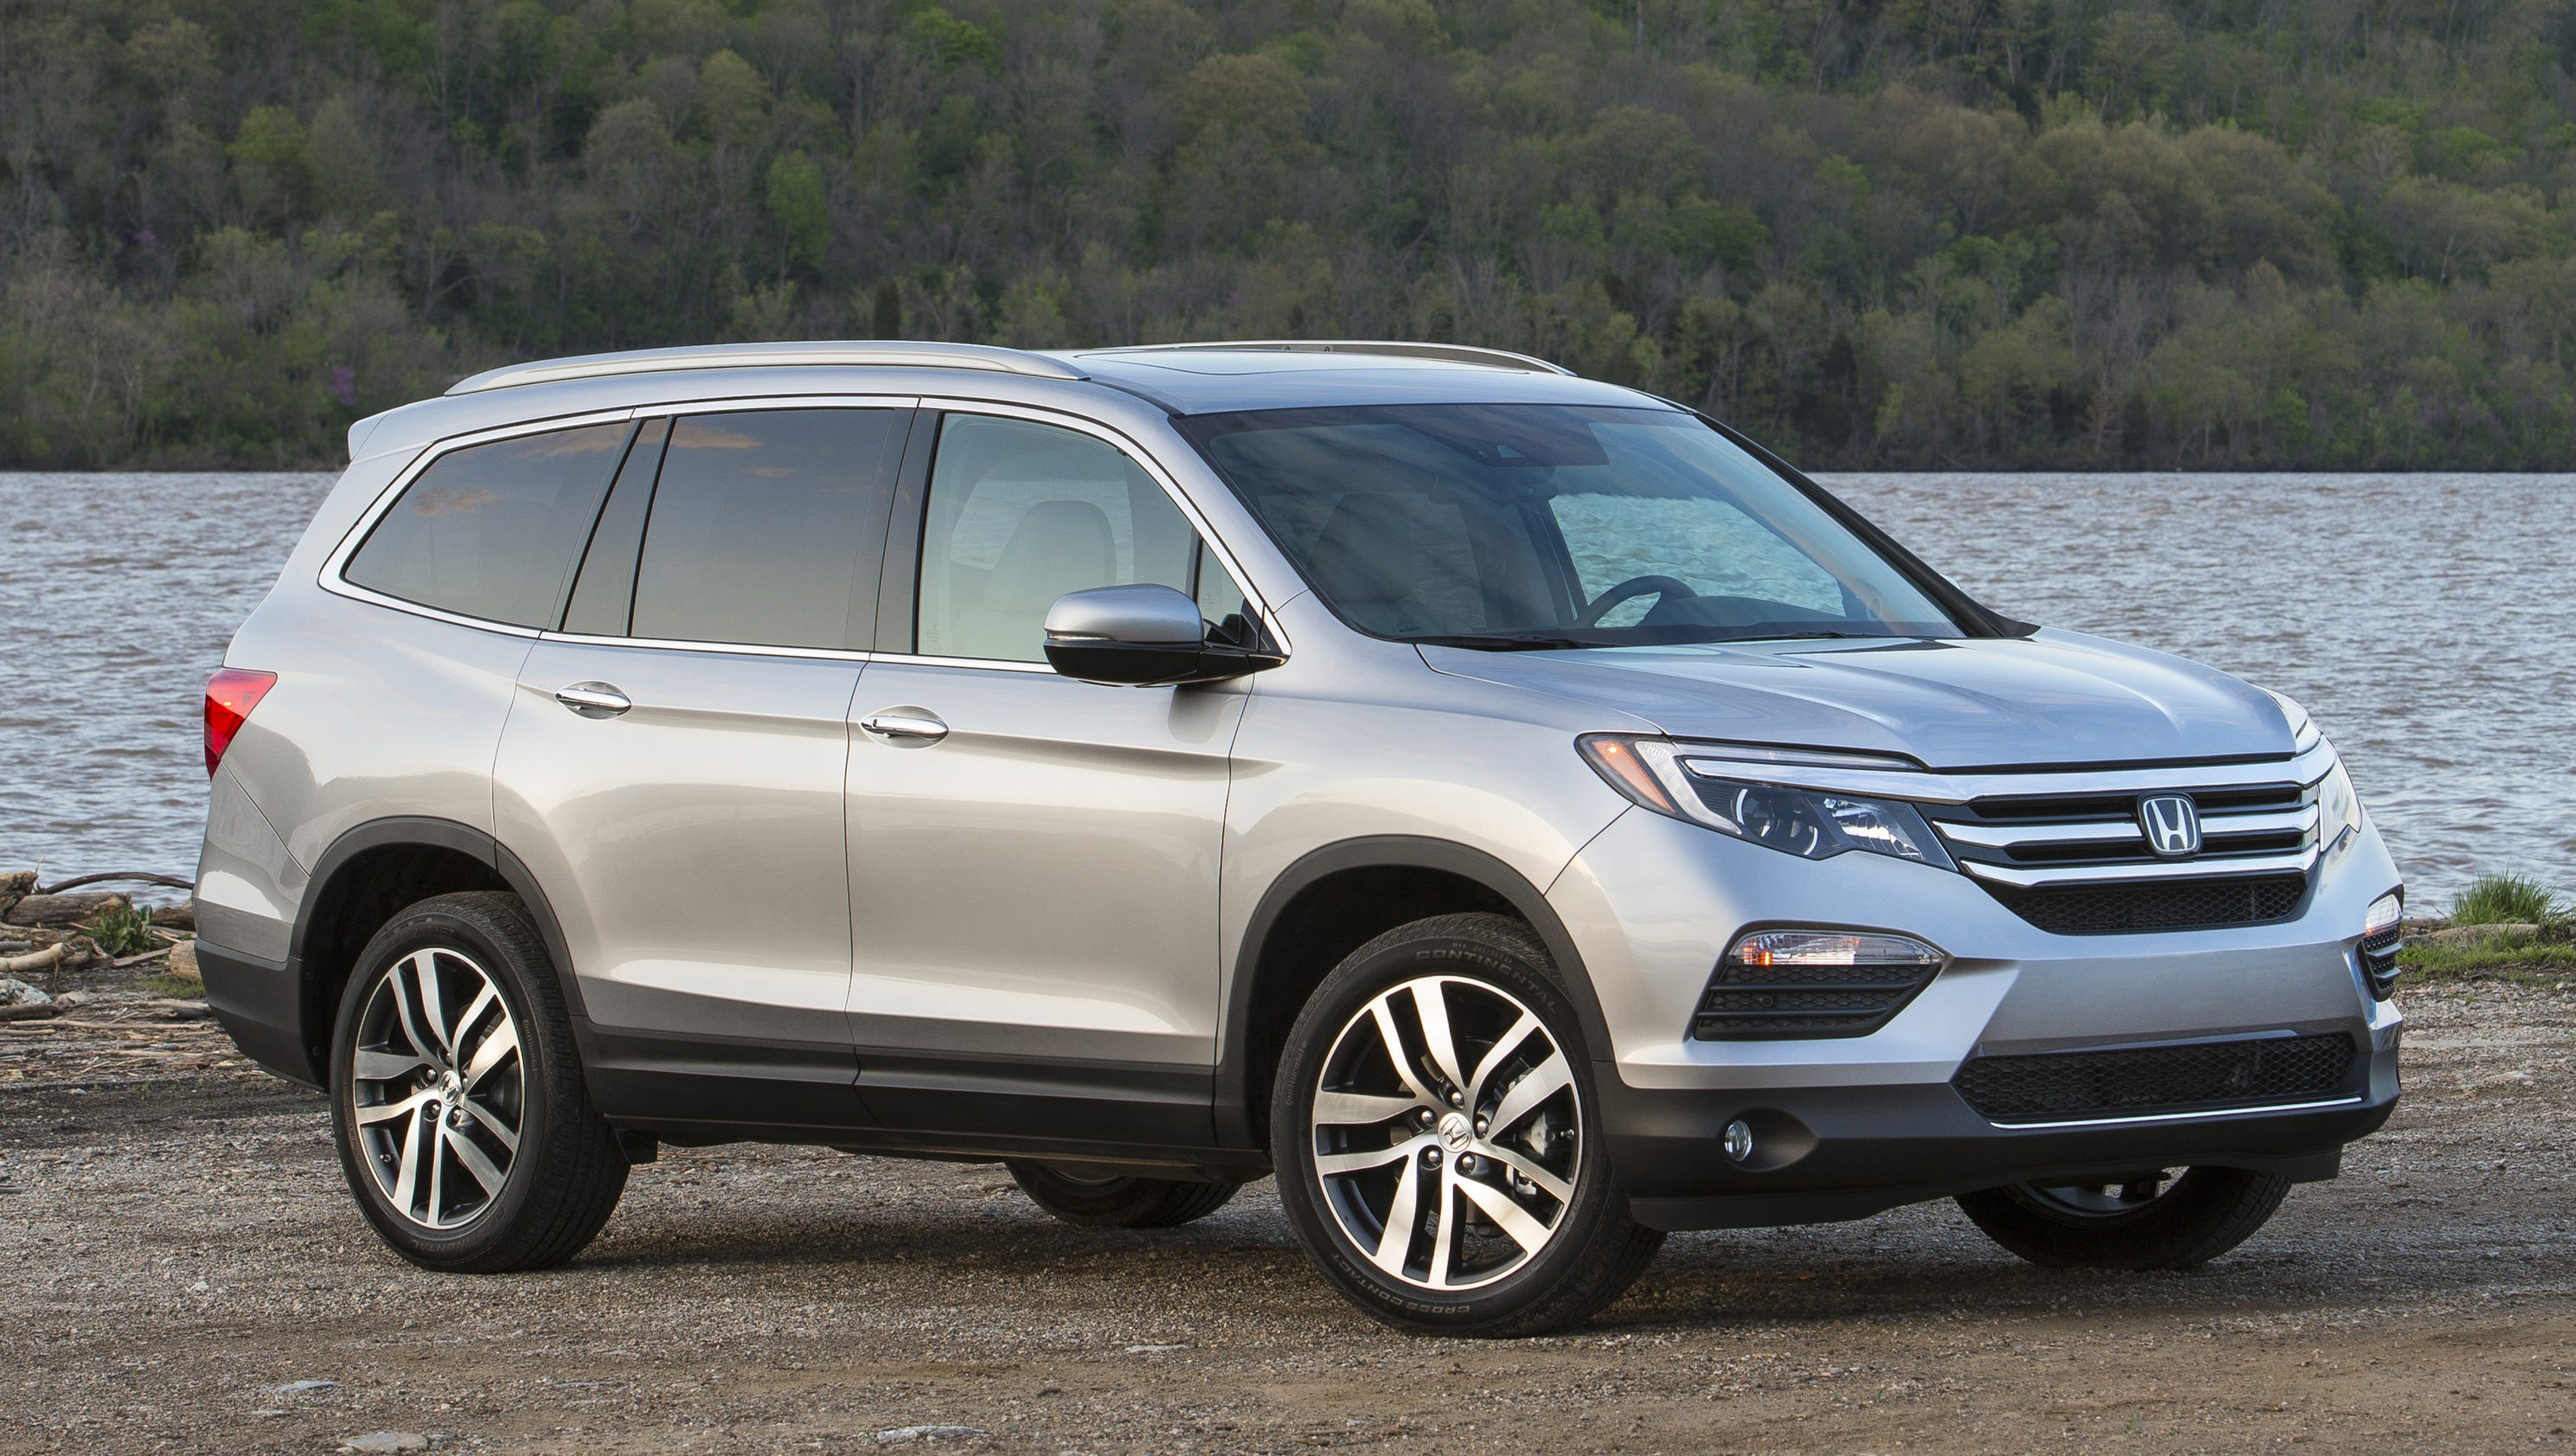 2016 honda pilot offers room and fuel economy